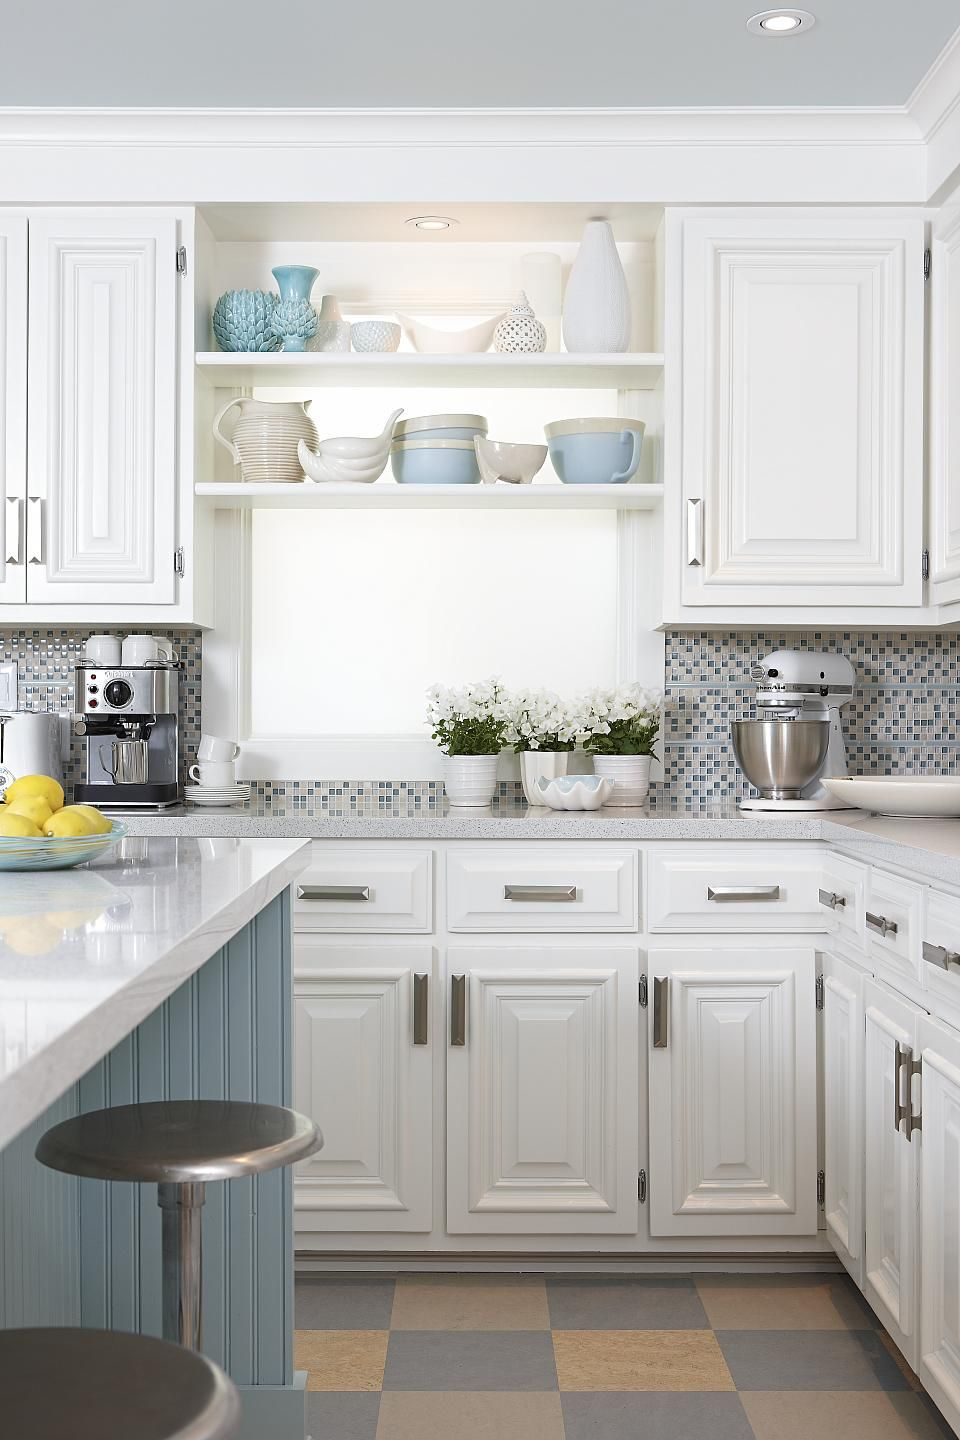 Merveilleux Backsplash Idea, Paint Color Above Cabinets Sarah Richardson Sarah 101  Kitchen Blue Island Checkerboard Floor